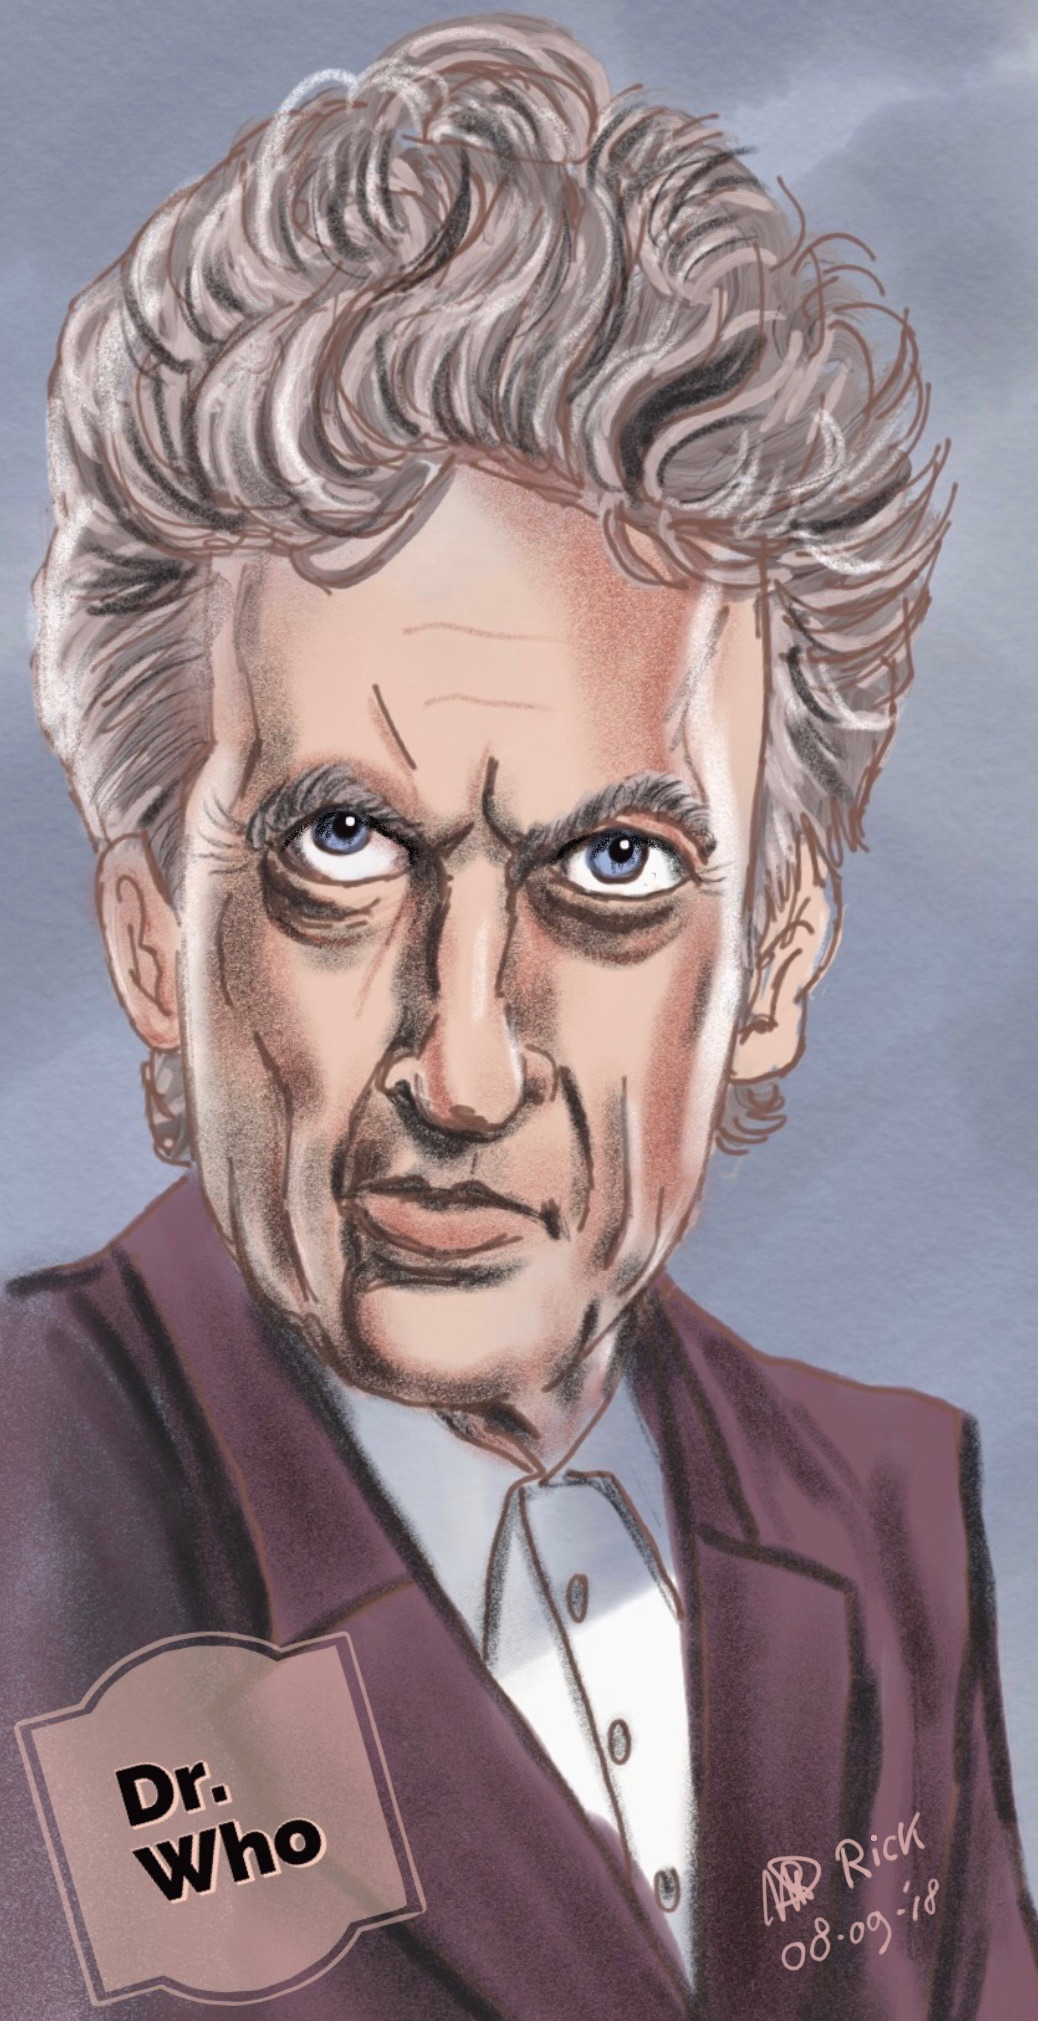 sf Peter Capaldi